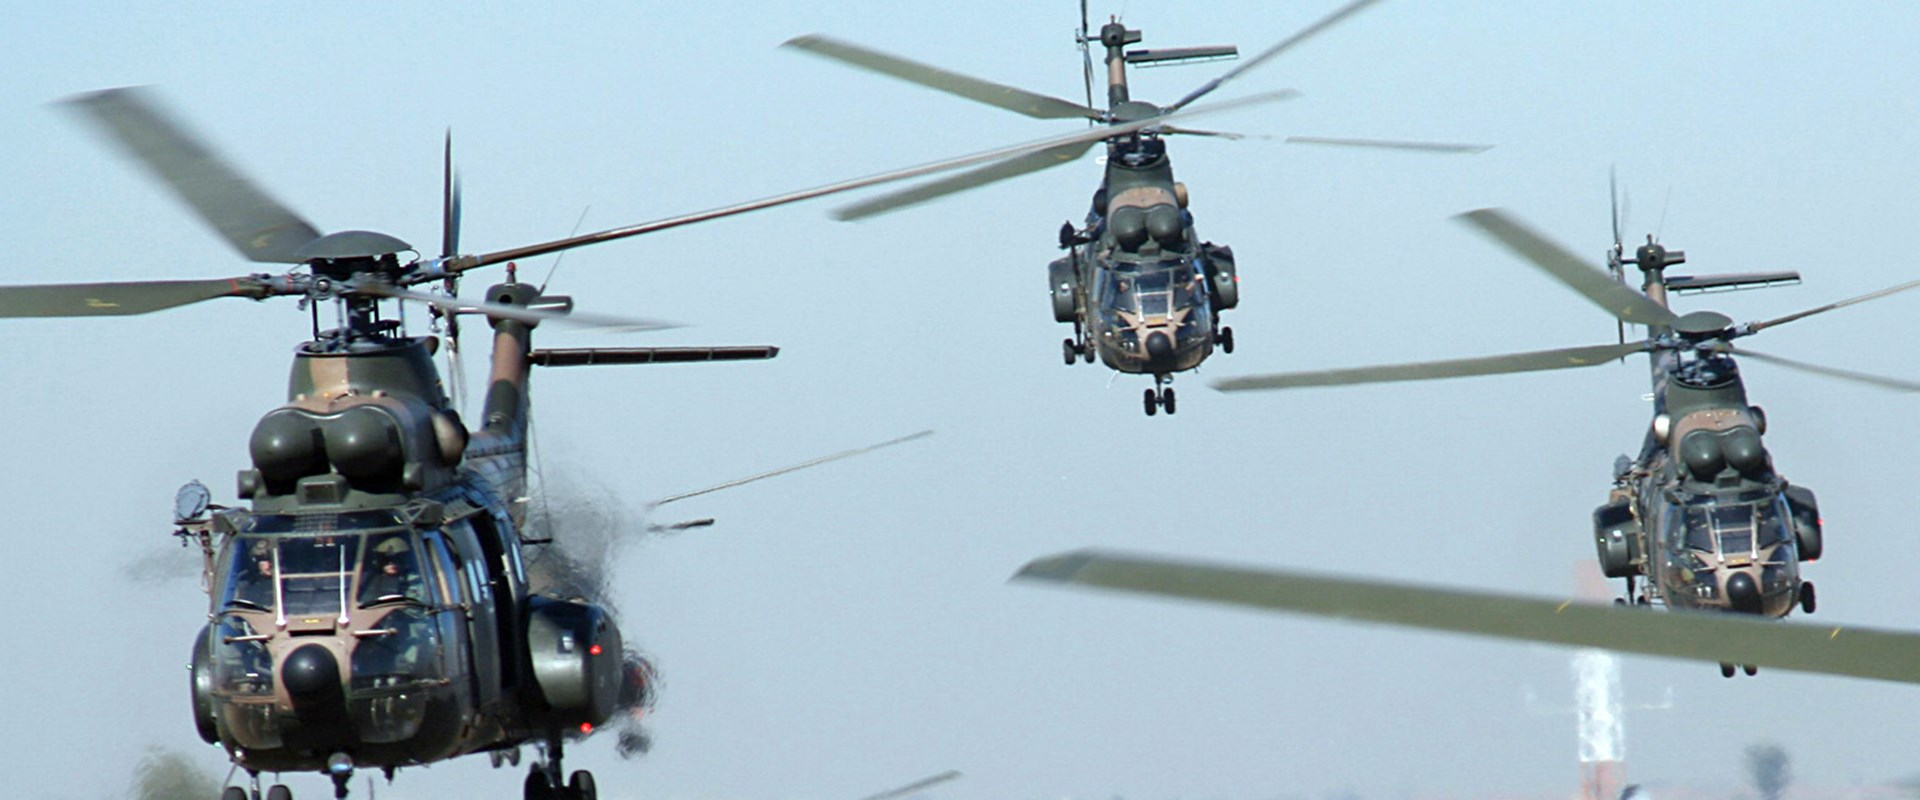 Fleet of helicopters taking to the skies over a runway